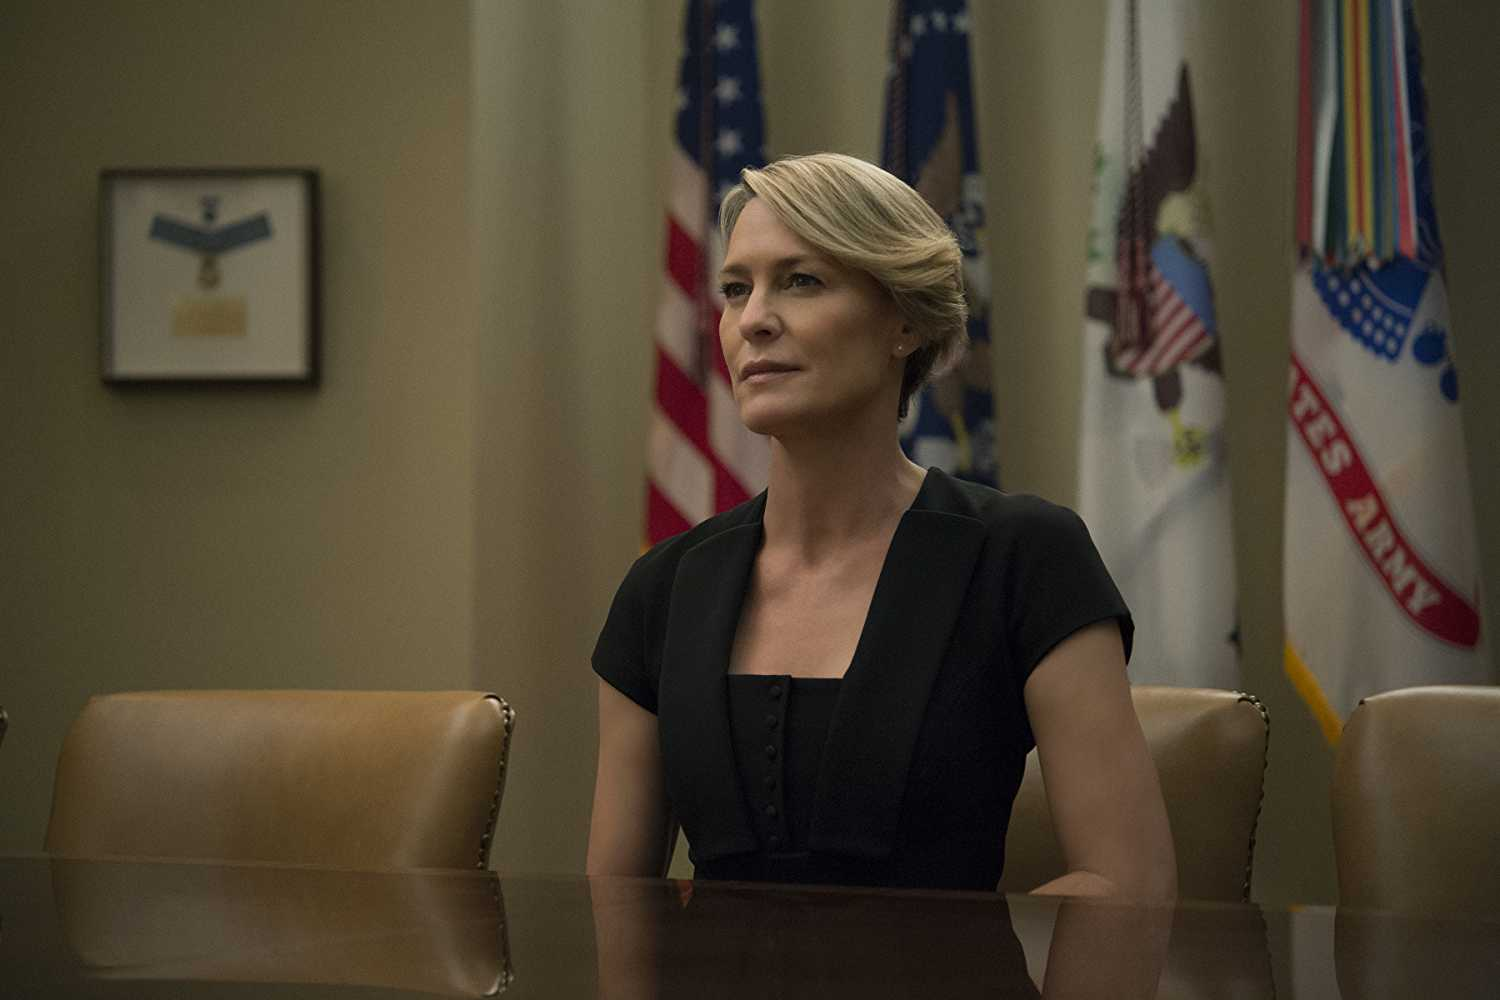 Wright will be the new lead in 'House of Cards' (Source: IMDb)